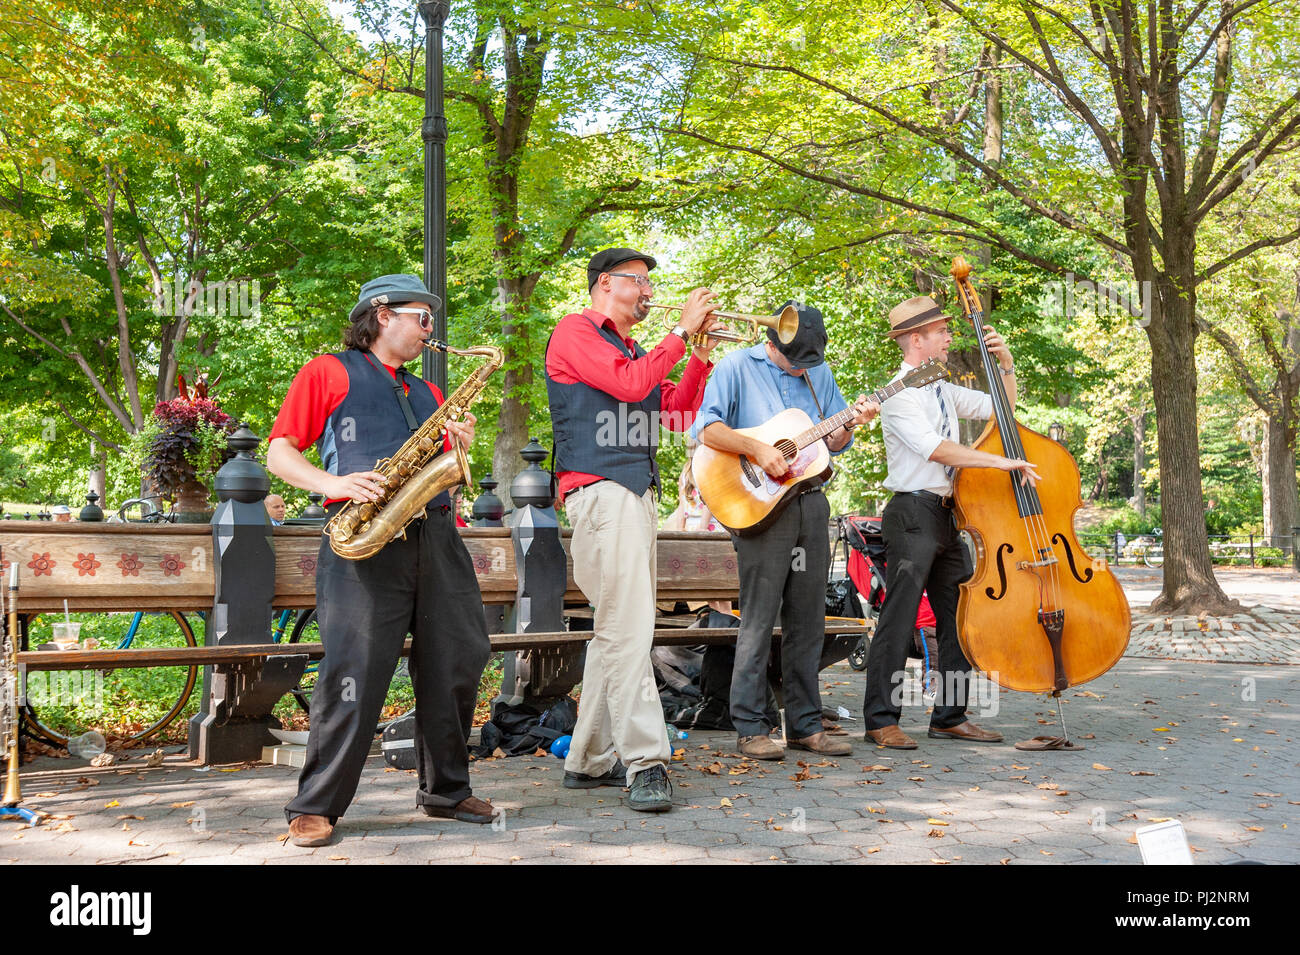 Jazz musicians busking in Central Park, New York City, USA - Stock Image